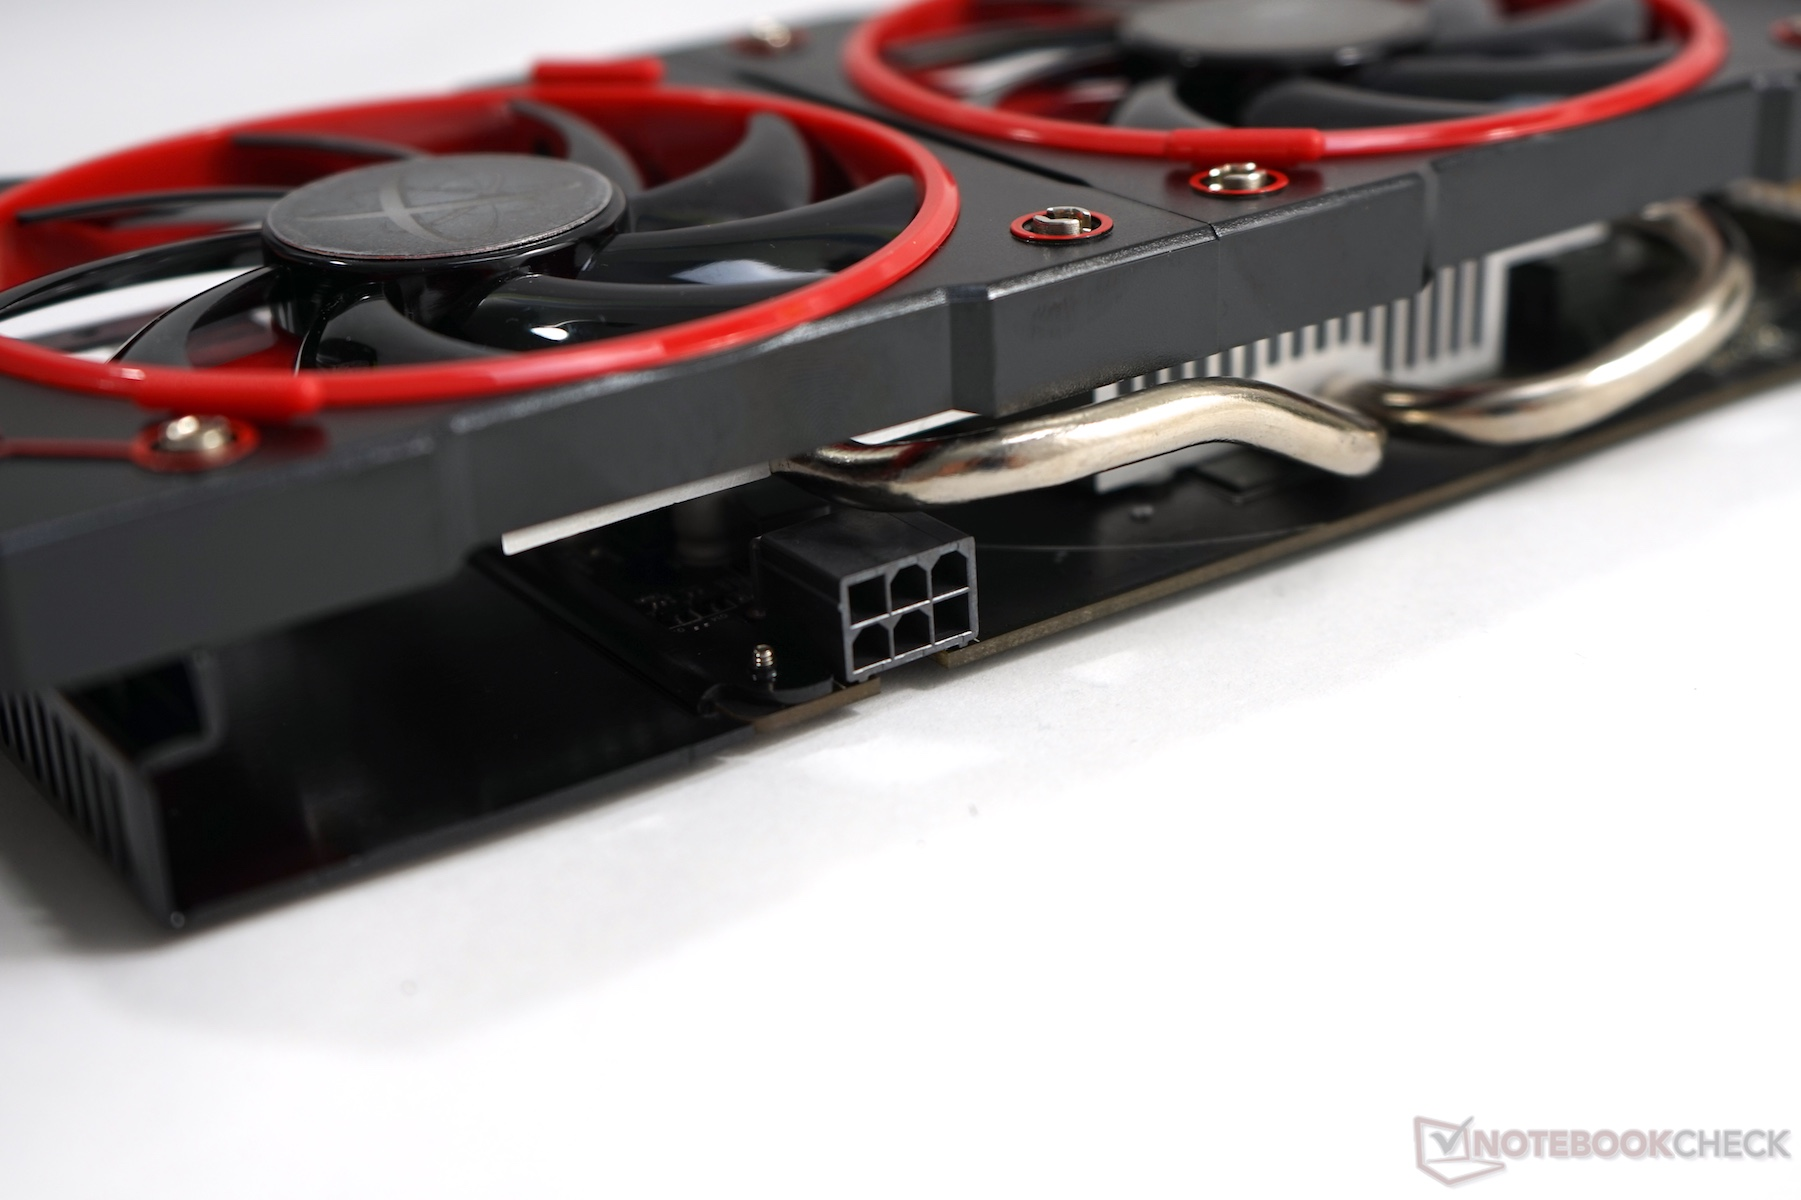 XFX Radeon RX 460 4 GB Double Dissipation (RX-460P4DFG5